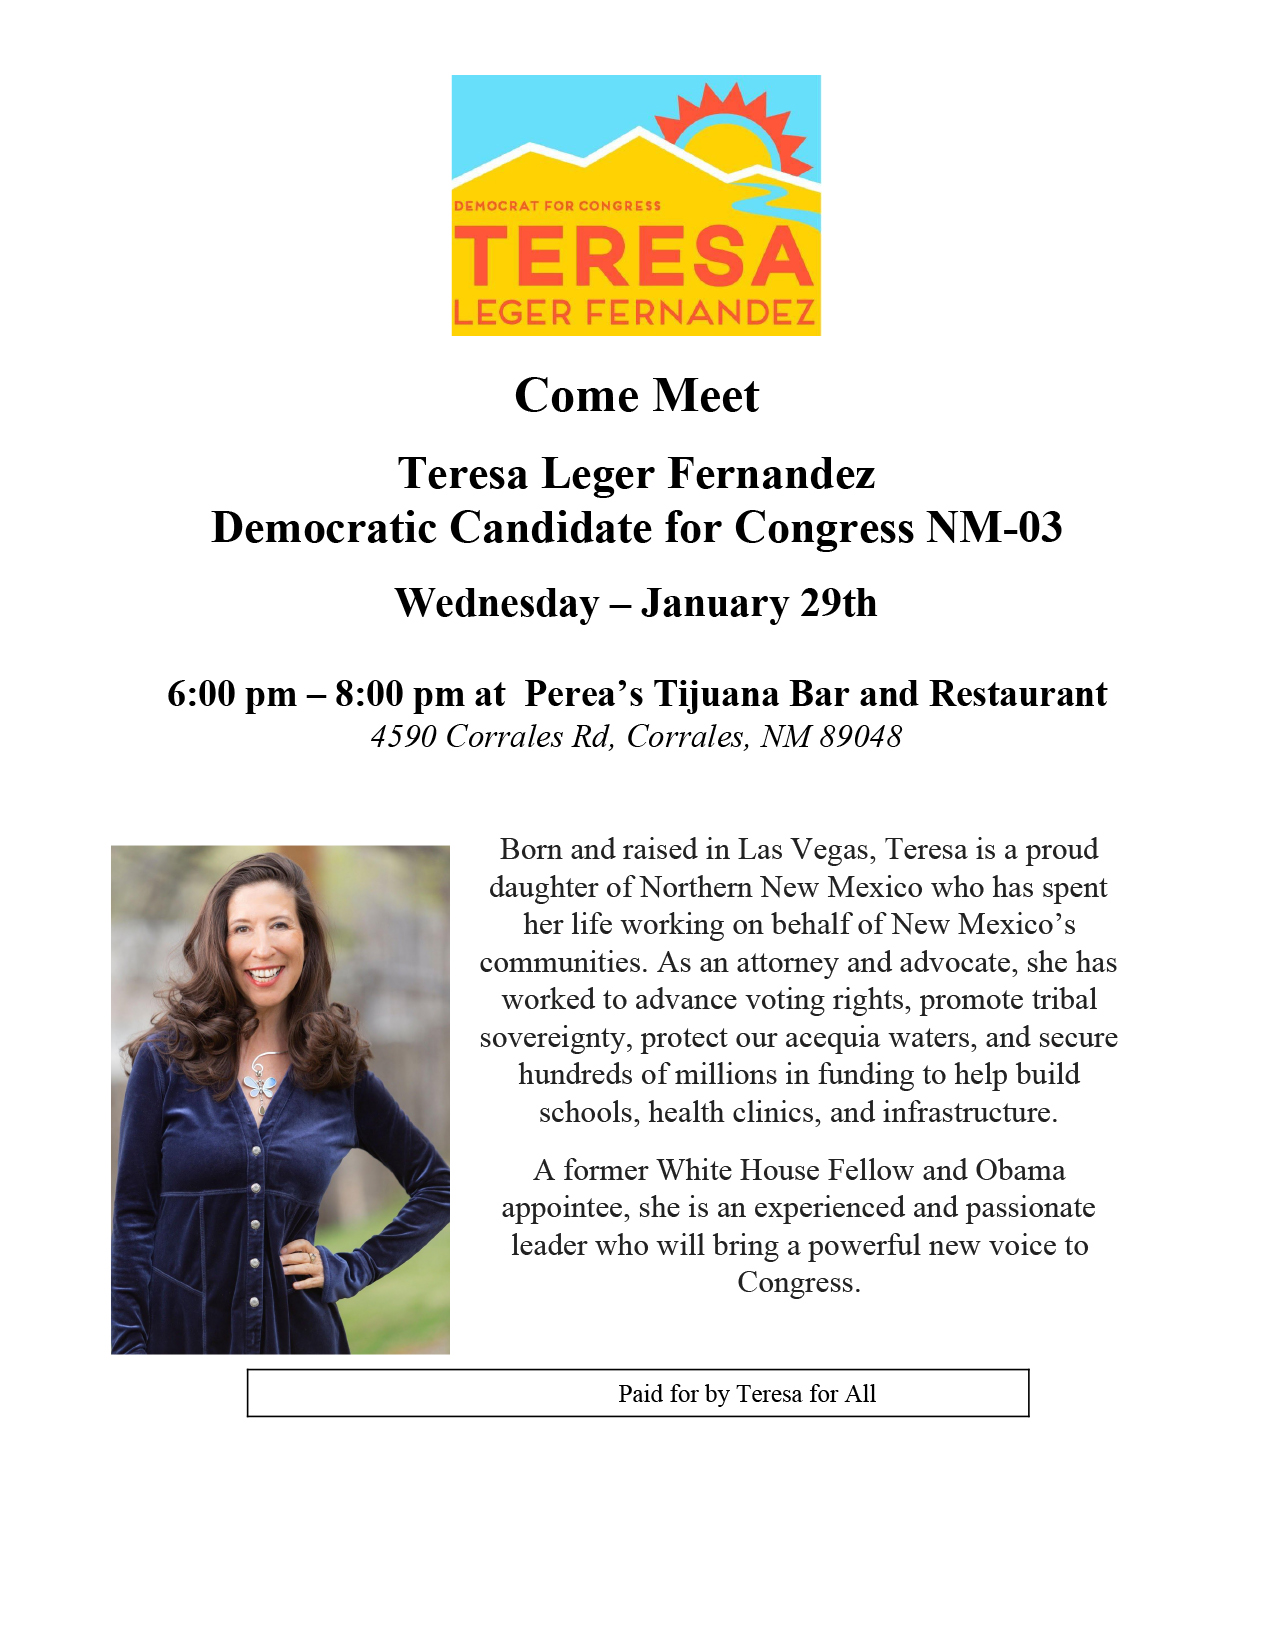 Come Meet Teresa Leger Fernandez Democratic Candidate for Congress NM-03 @ Perea's Tijuana Bar and Restaurant | Corrales | New Mexico | United States